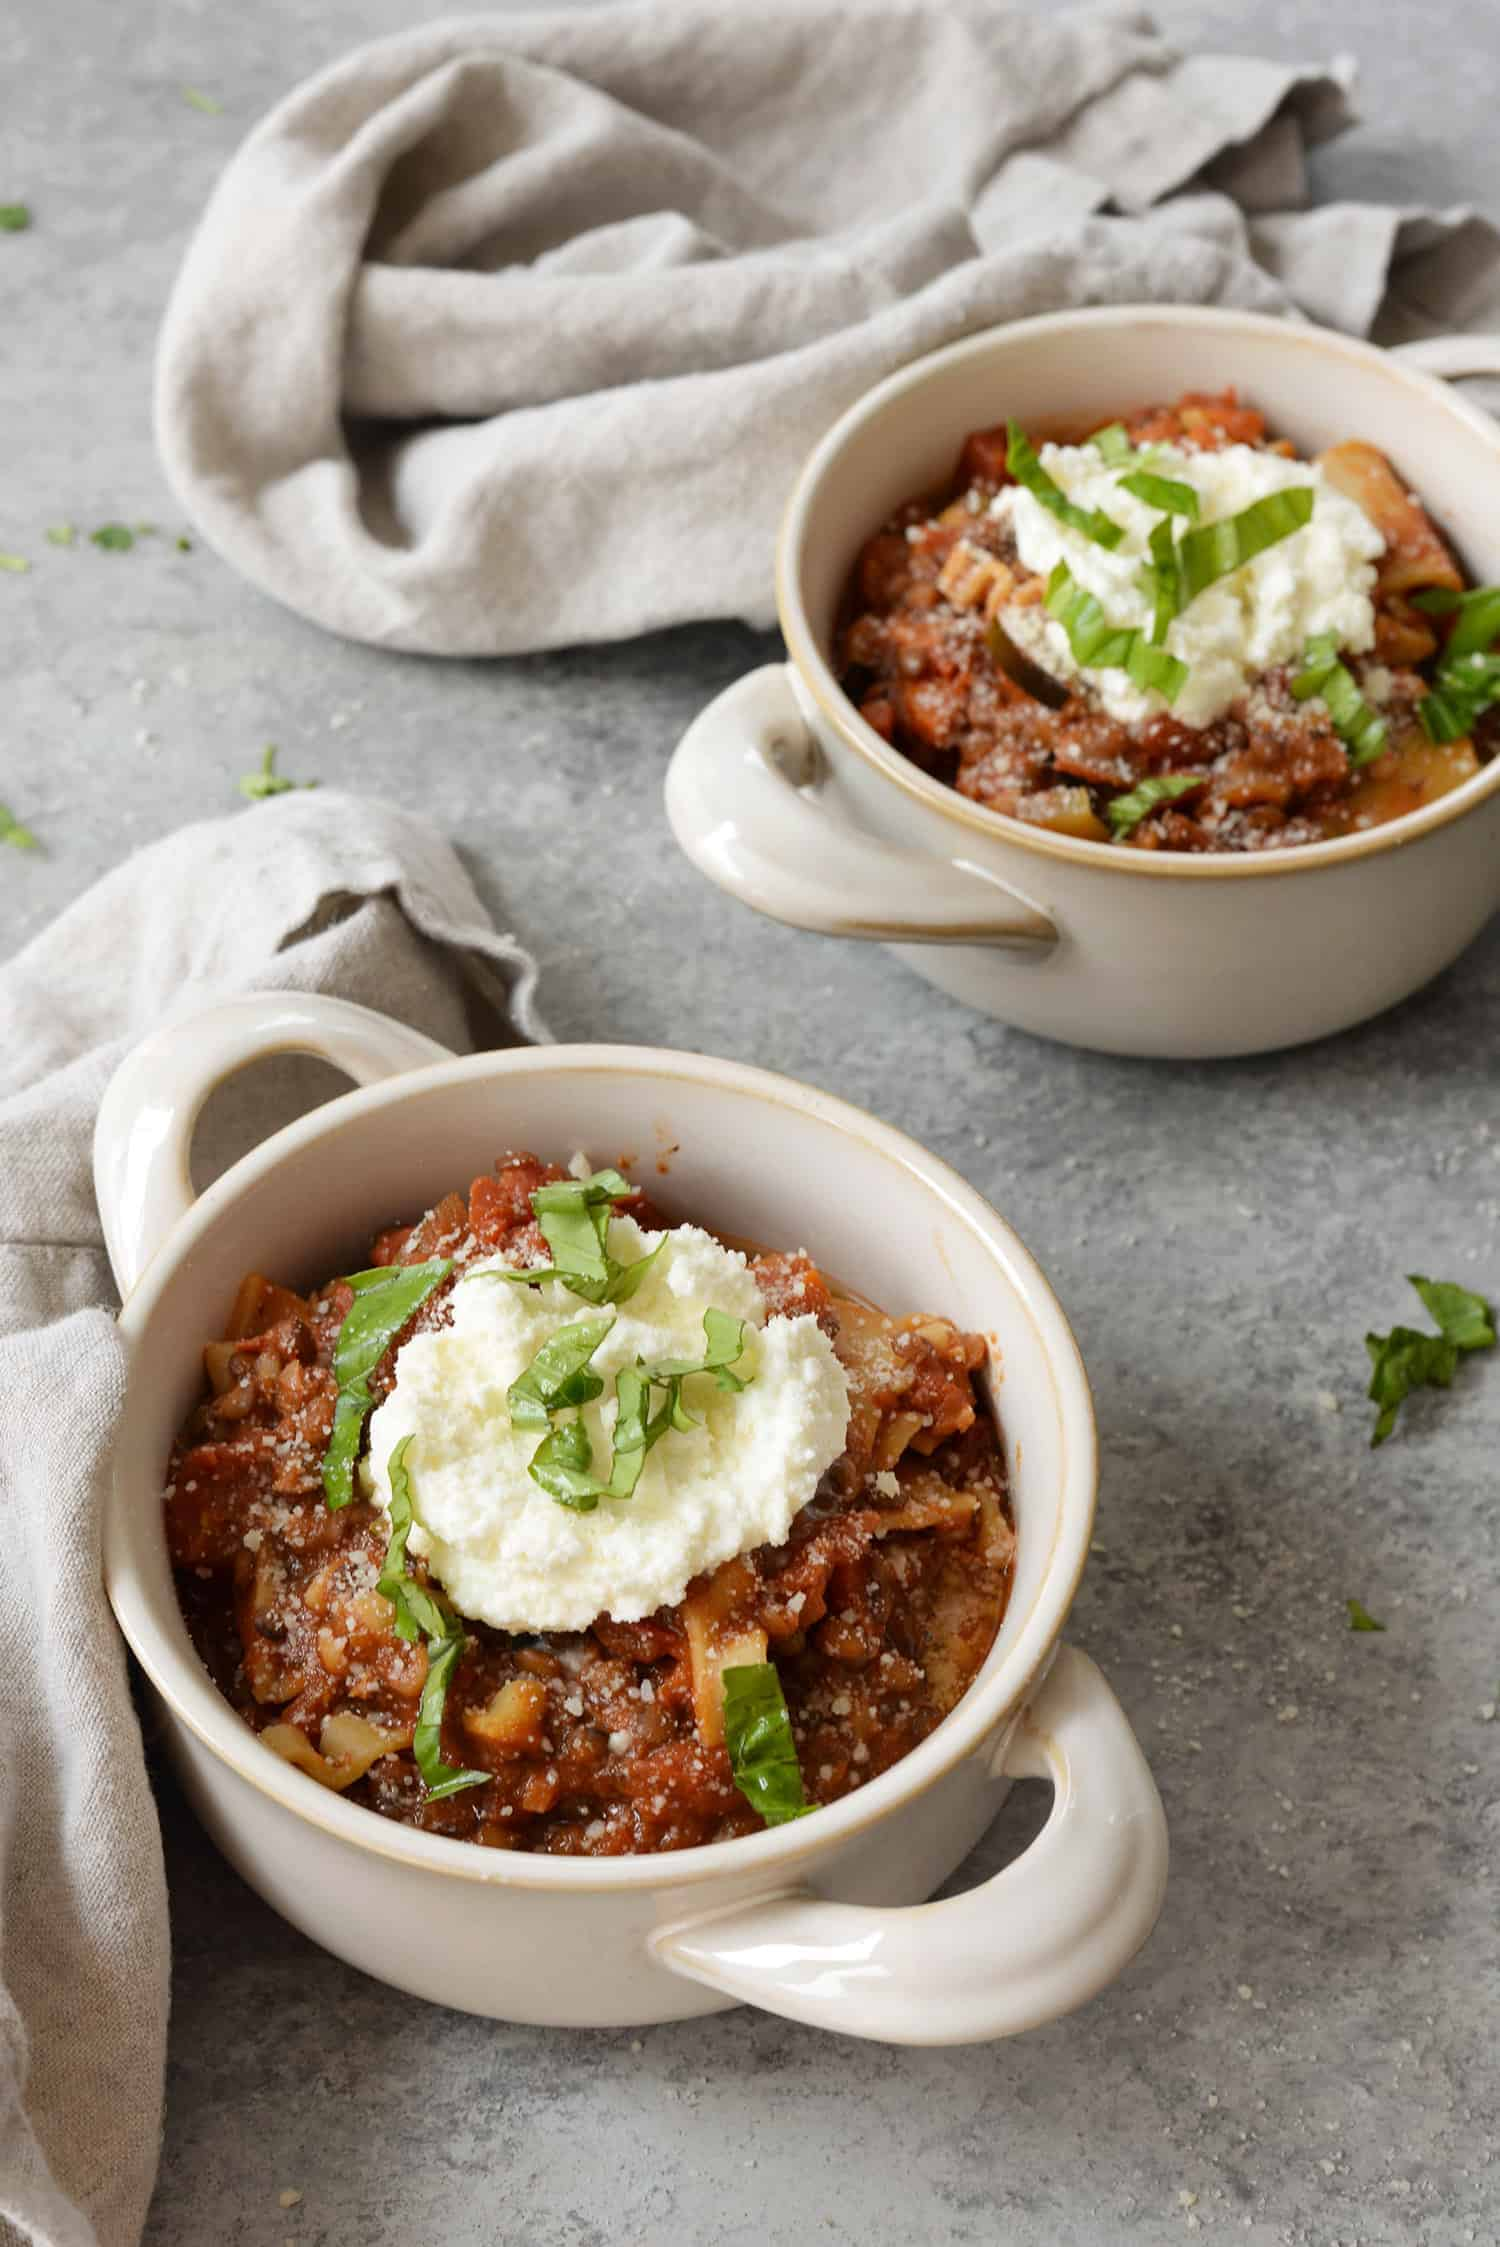 Slow Cooker Lentil Lasagna Soup! You will love this hearty, healthy slow-cooker lasagna soup made vegetarian with lentils. Easily vegan using dairy-free ricotta. | www.delishknowledge.com